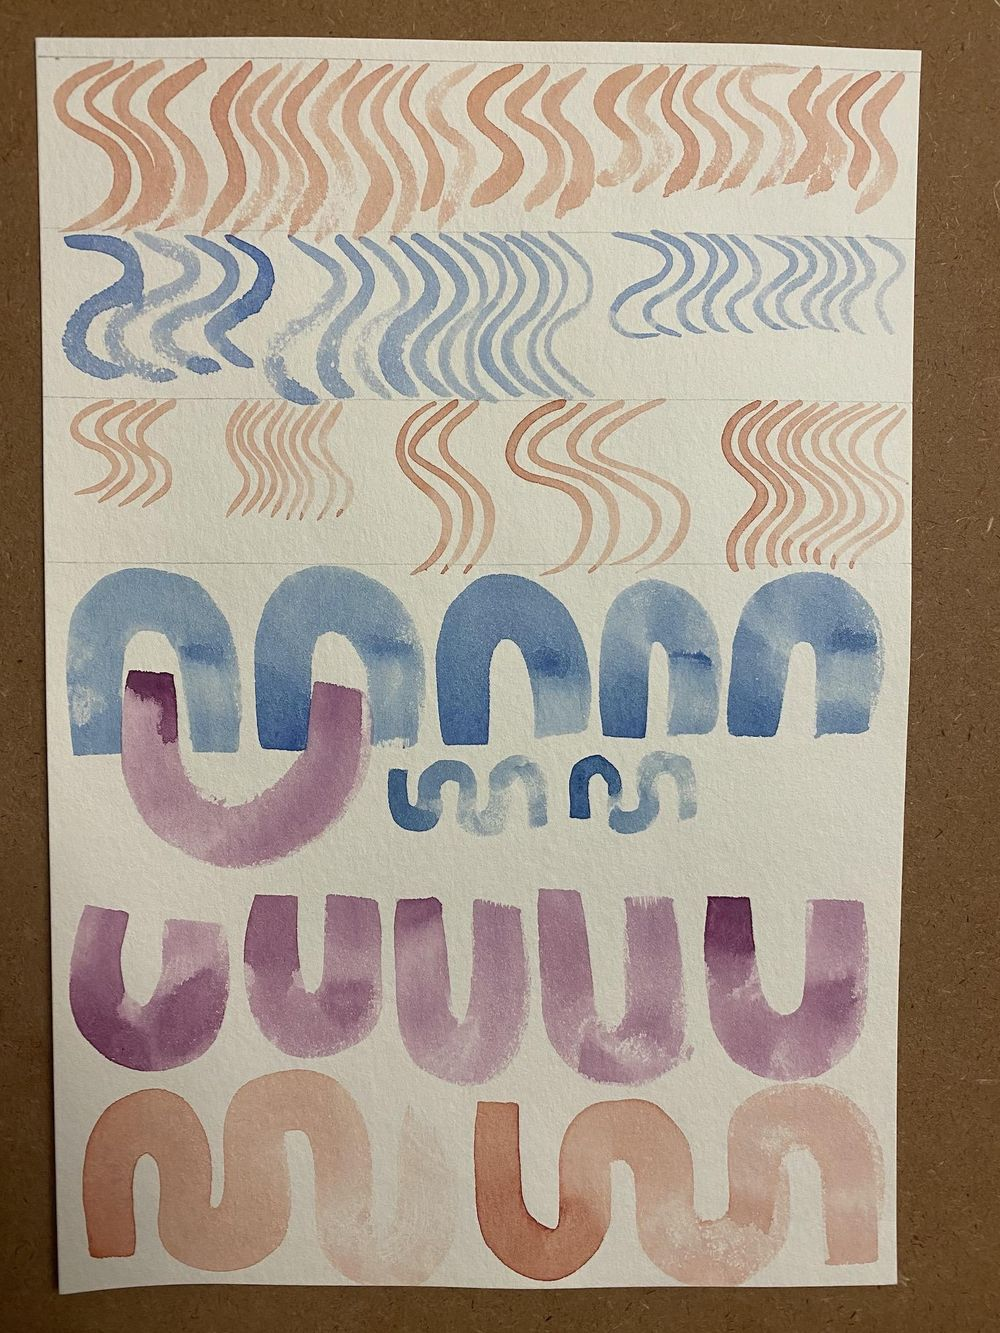 Watercolor workout exercises - image 6 - student project